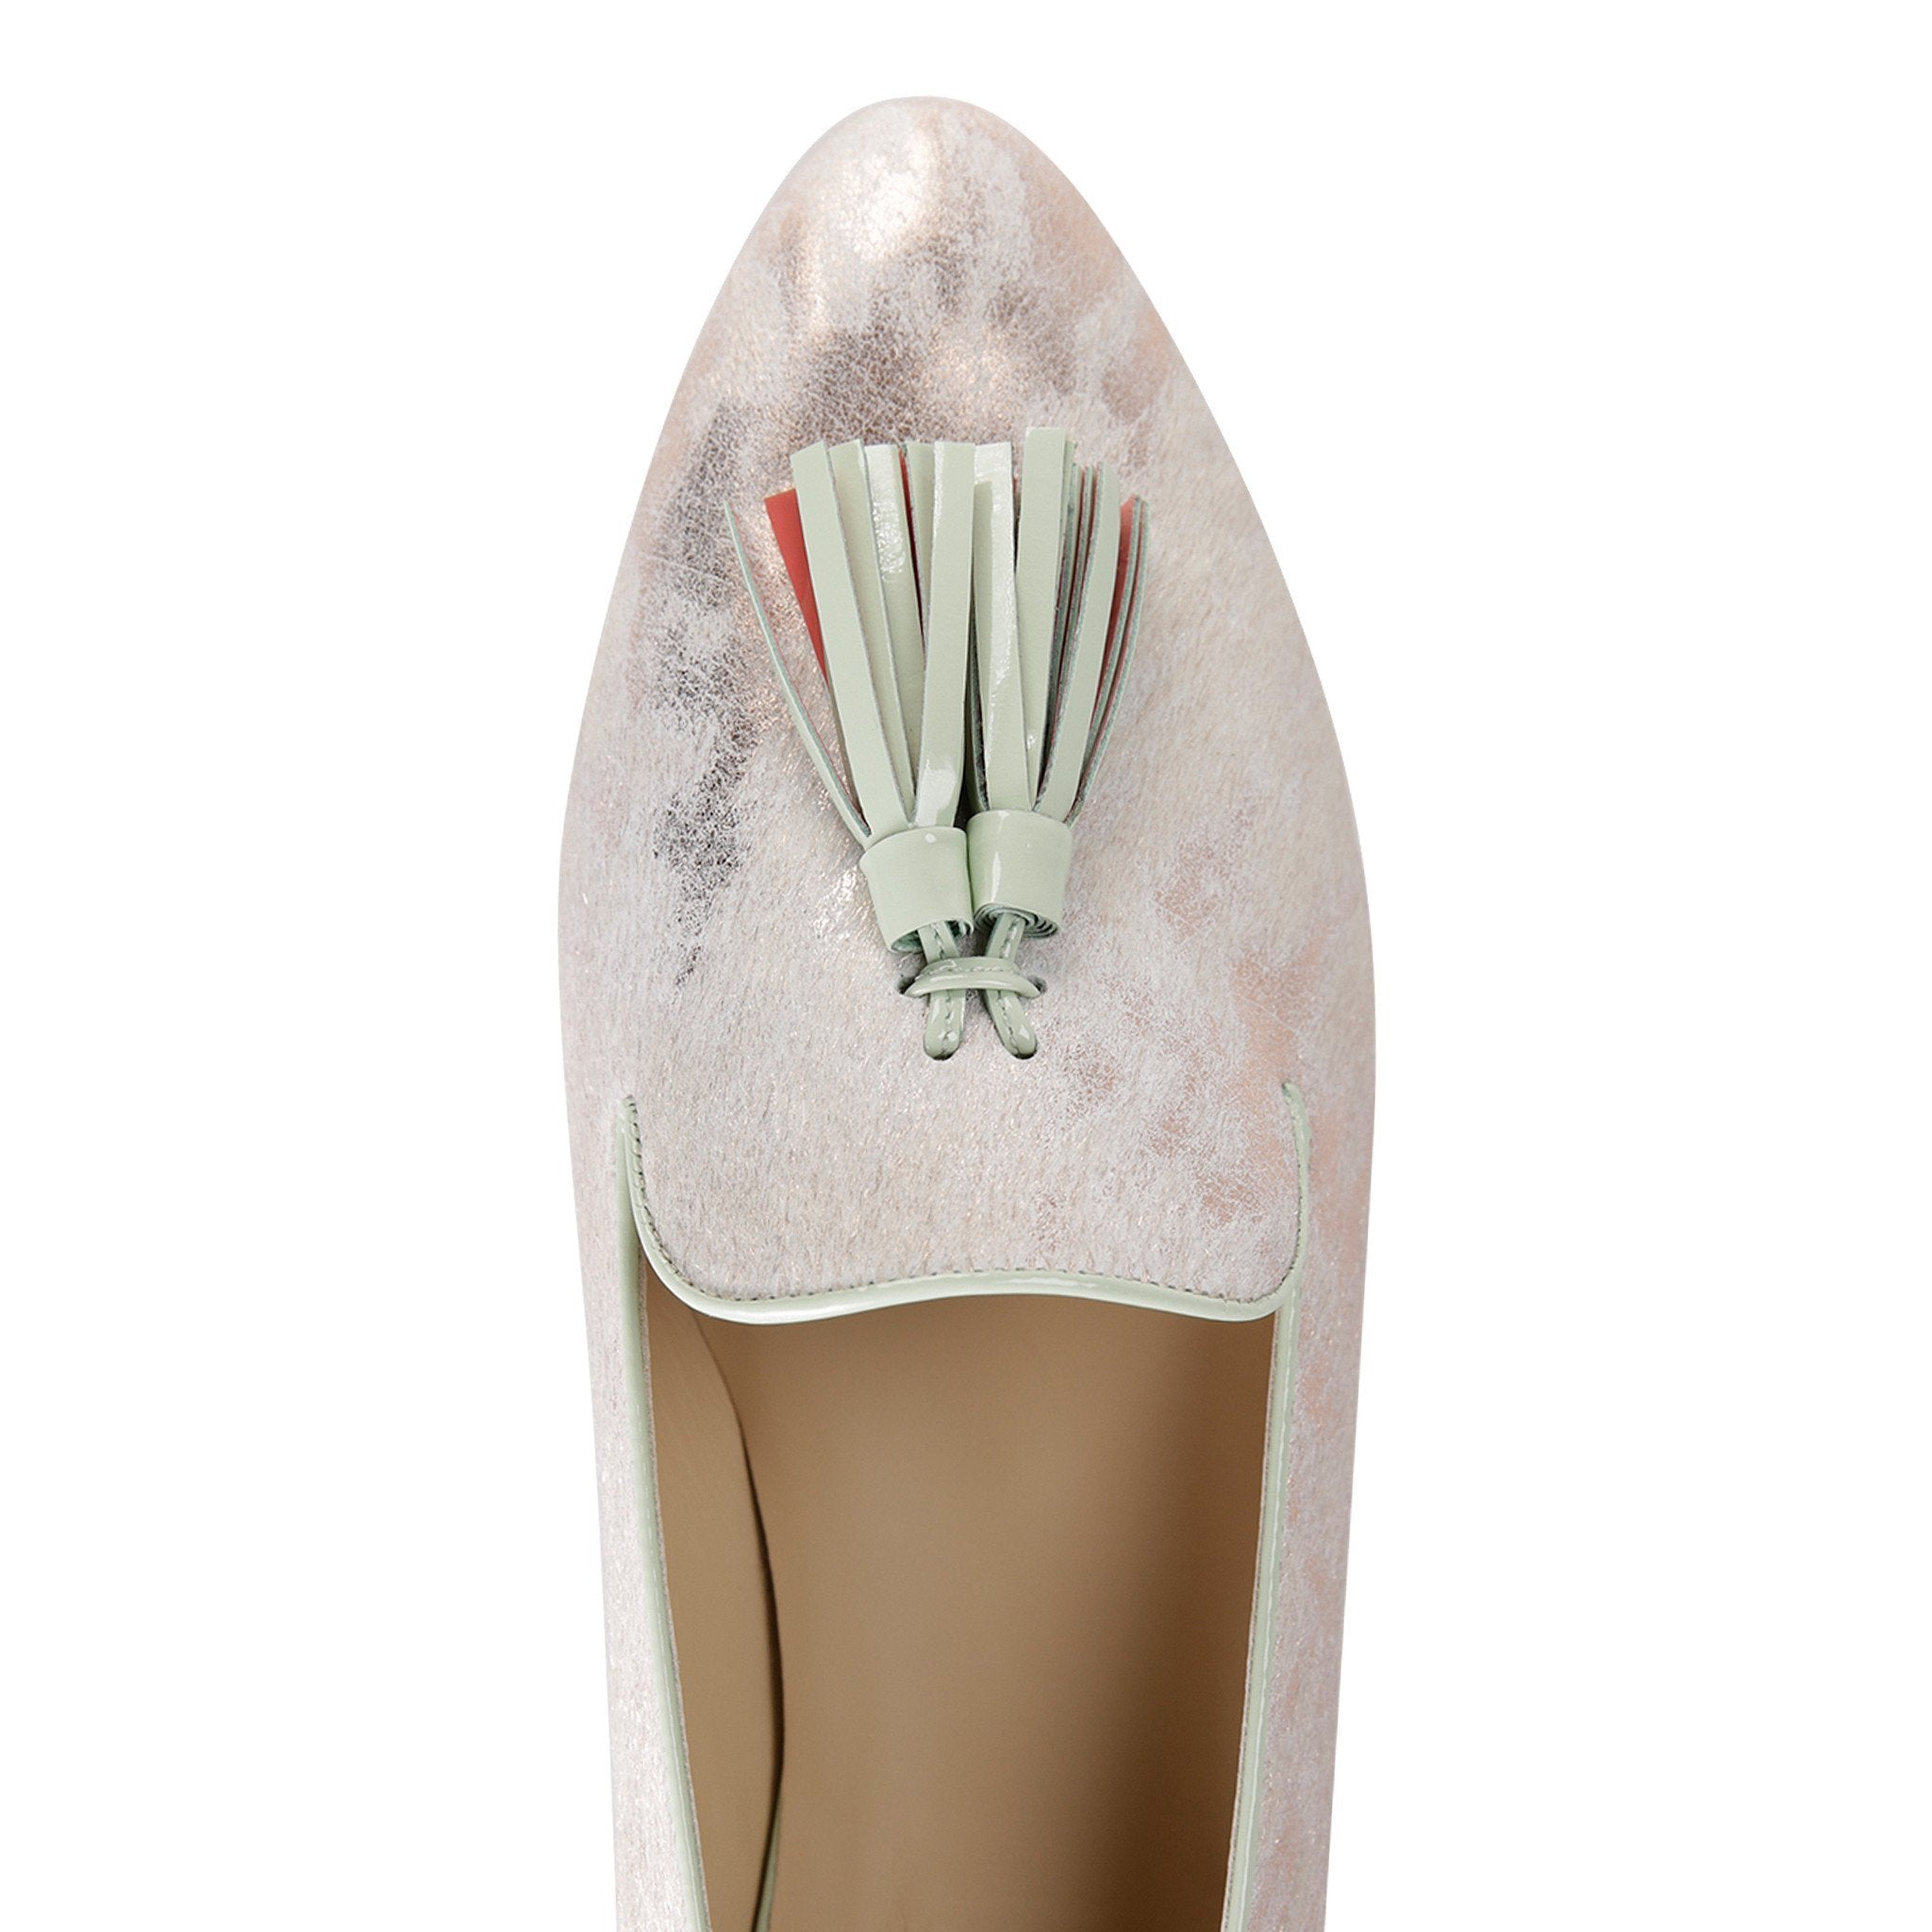 PARMA - Calf Hair Vintage Rose Gold + Seafoam, VIAJIYU - Women's Hand Made Sustainable Luxury Shoes. Made in Italy. Made to Order.